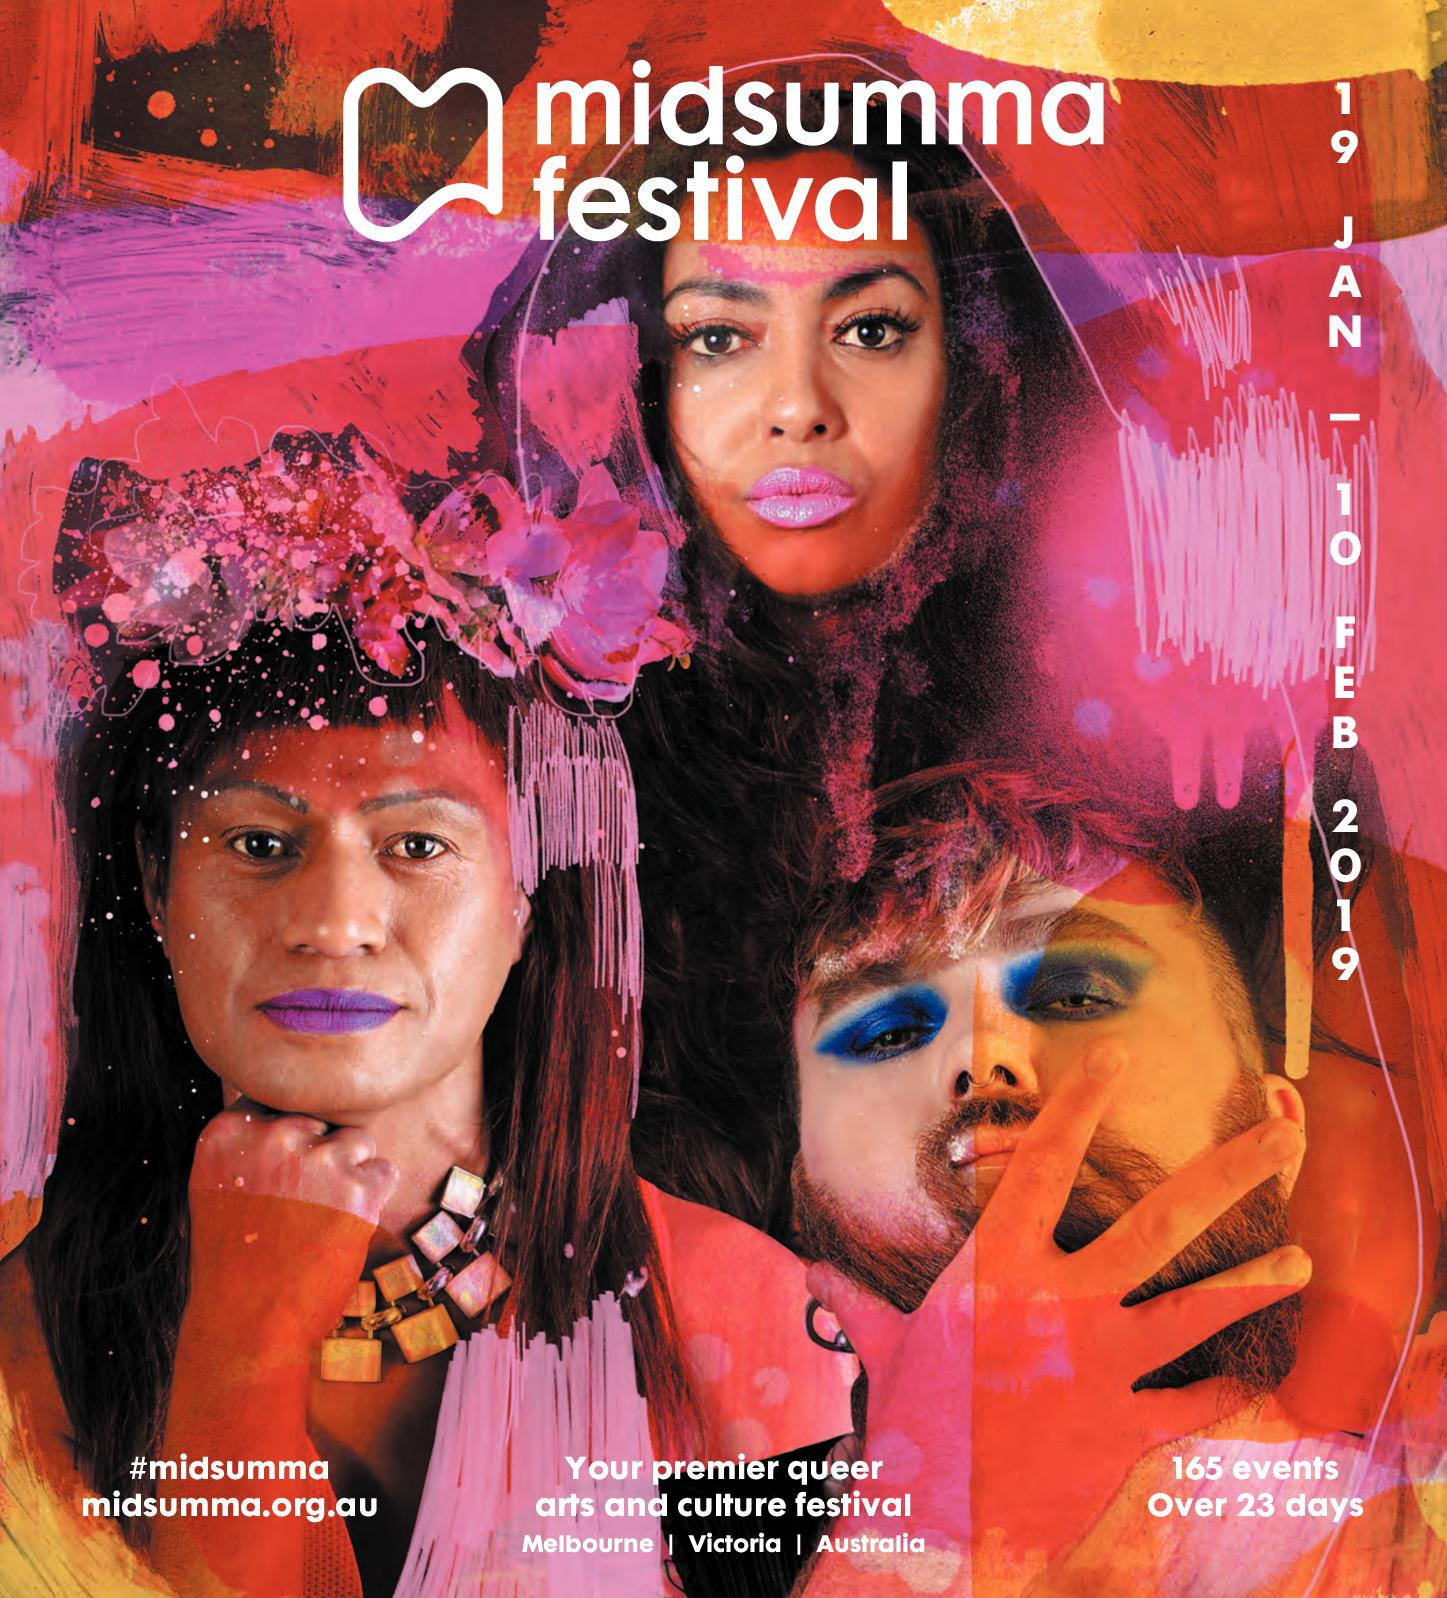 Calaméo - 2019 Midsumma Festival Program Guide